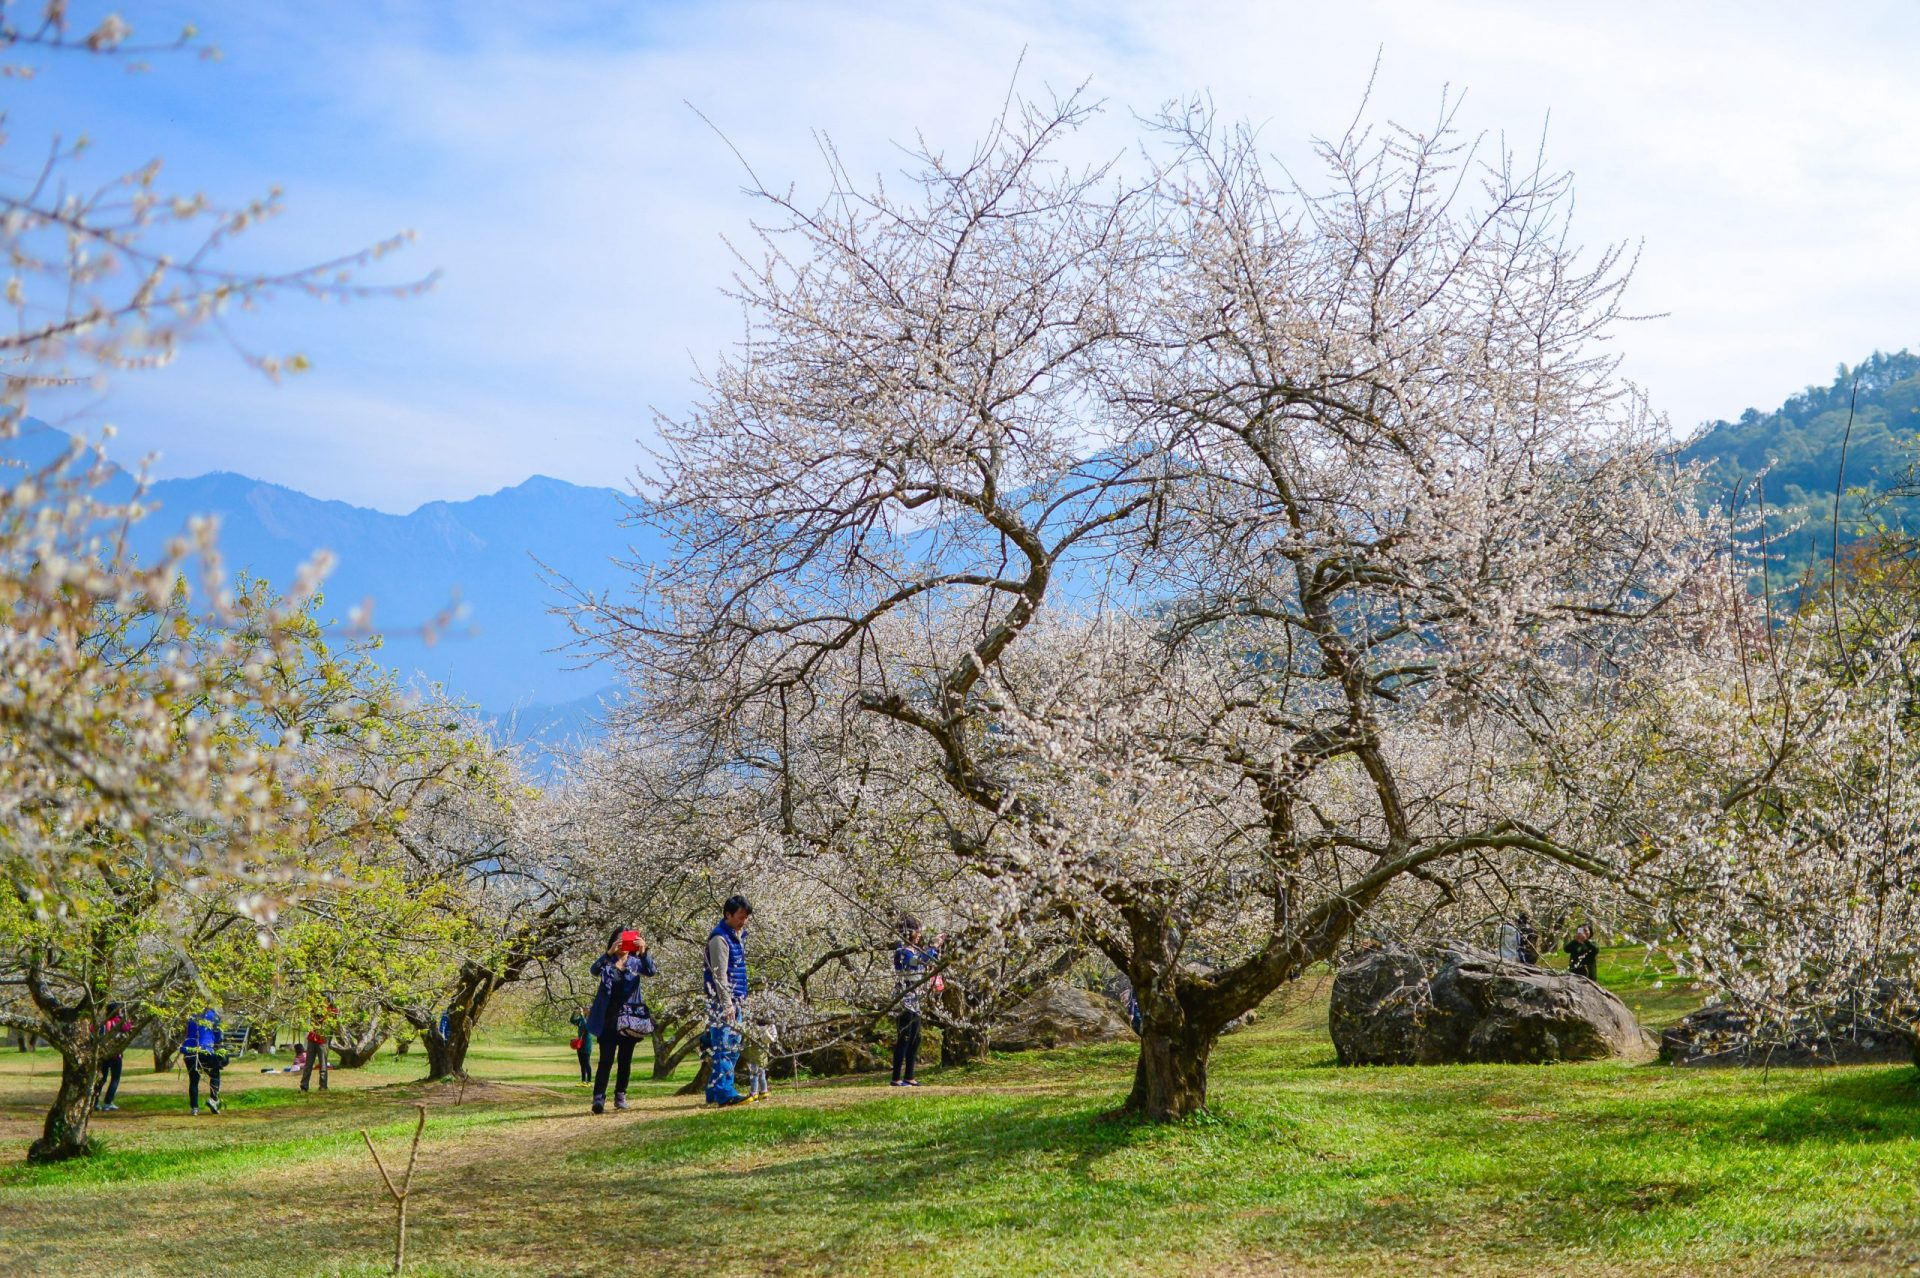 The plum blossom in the vicinity of Dongpu Hot Spring Area in central Taiwan. (Image: Courtesy of Hotel Tilun Dongpu Spa)